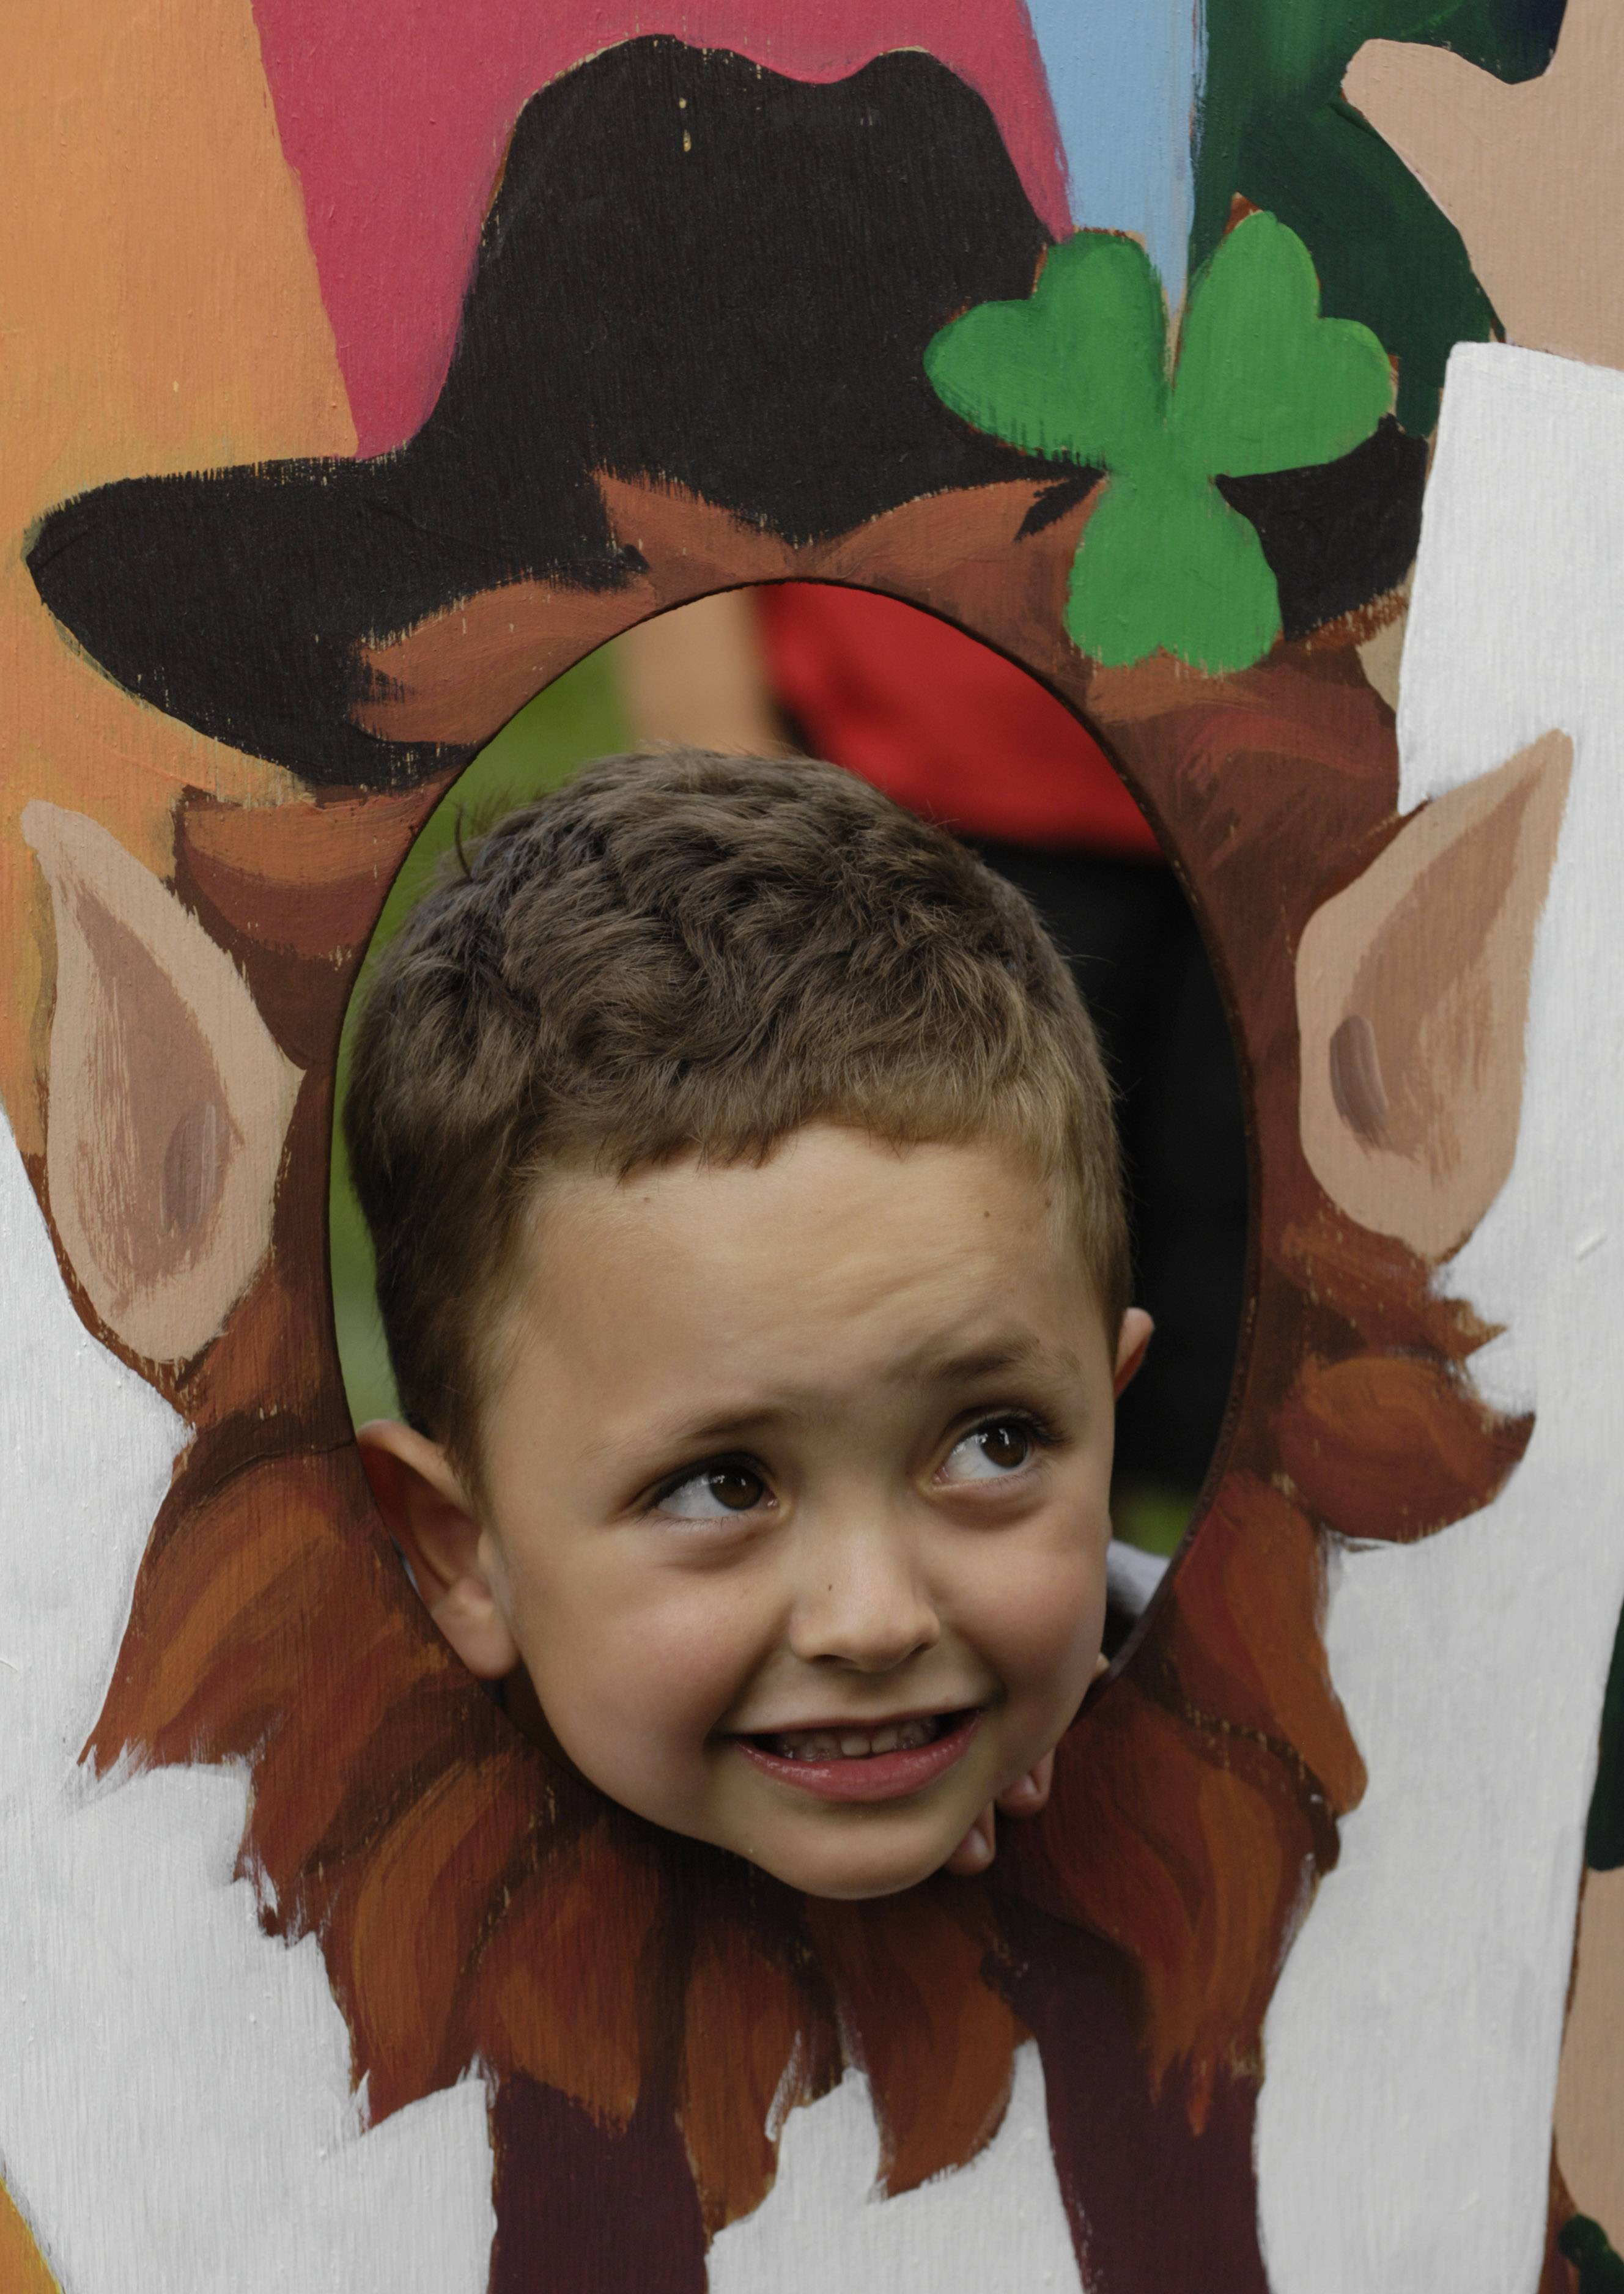 Nathan Oberg, 4, of Rockford sticks his head through a plywood leprechaun cutout during Friday's Irish Fest in Arlington Heights while visiting the event with his grandmother, a resident of the village.